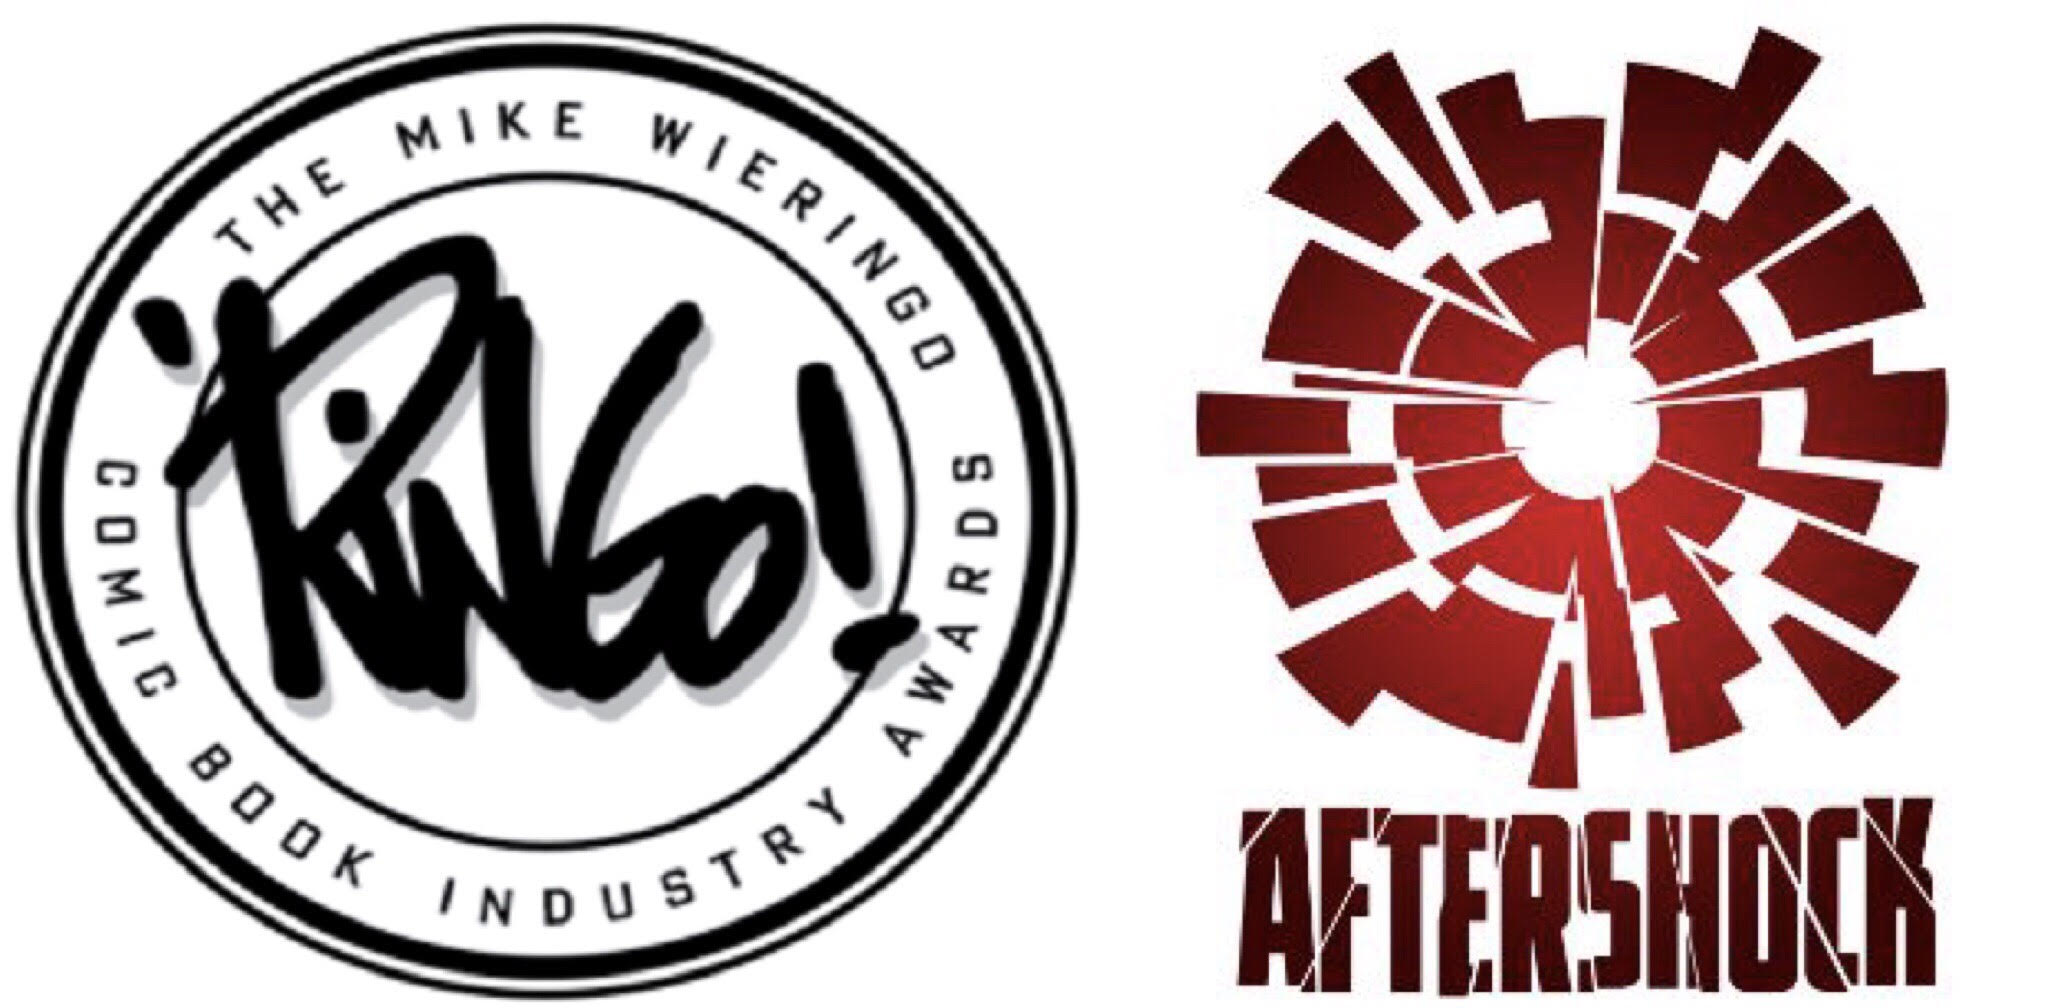 AfterShock Logos